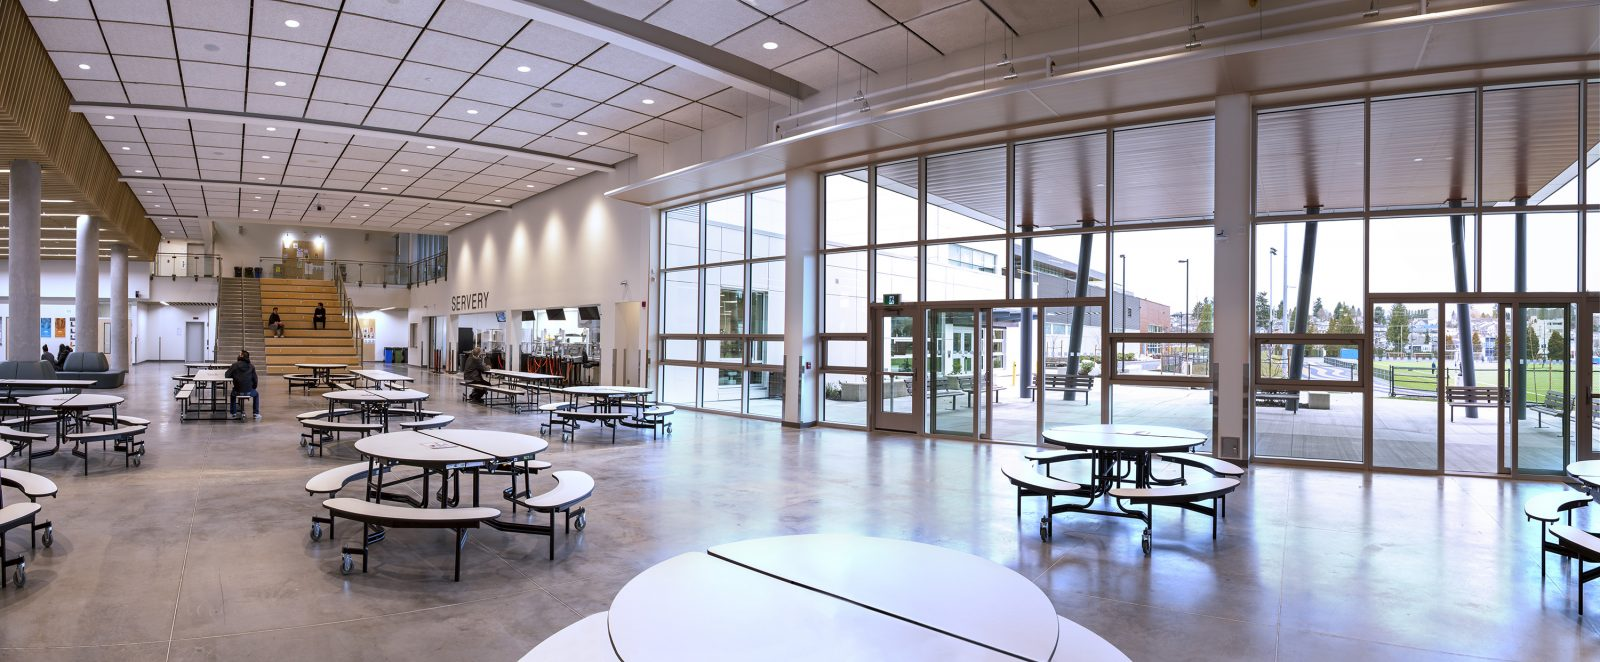 New Westminster Secondary